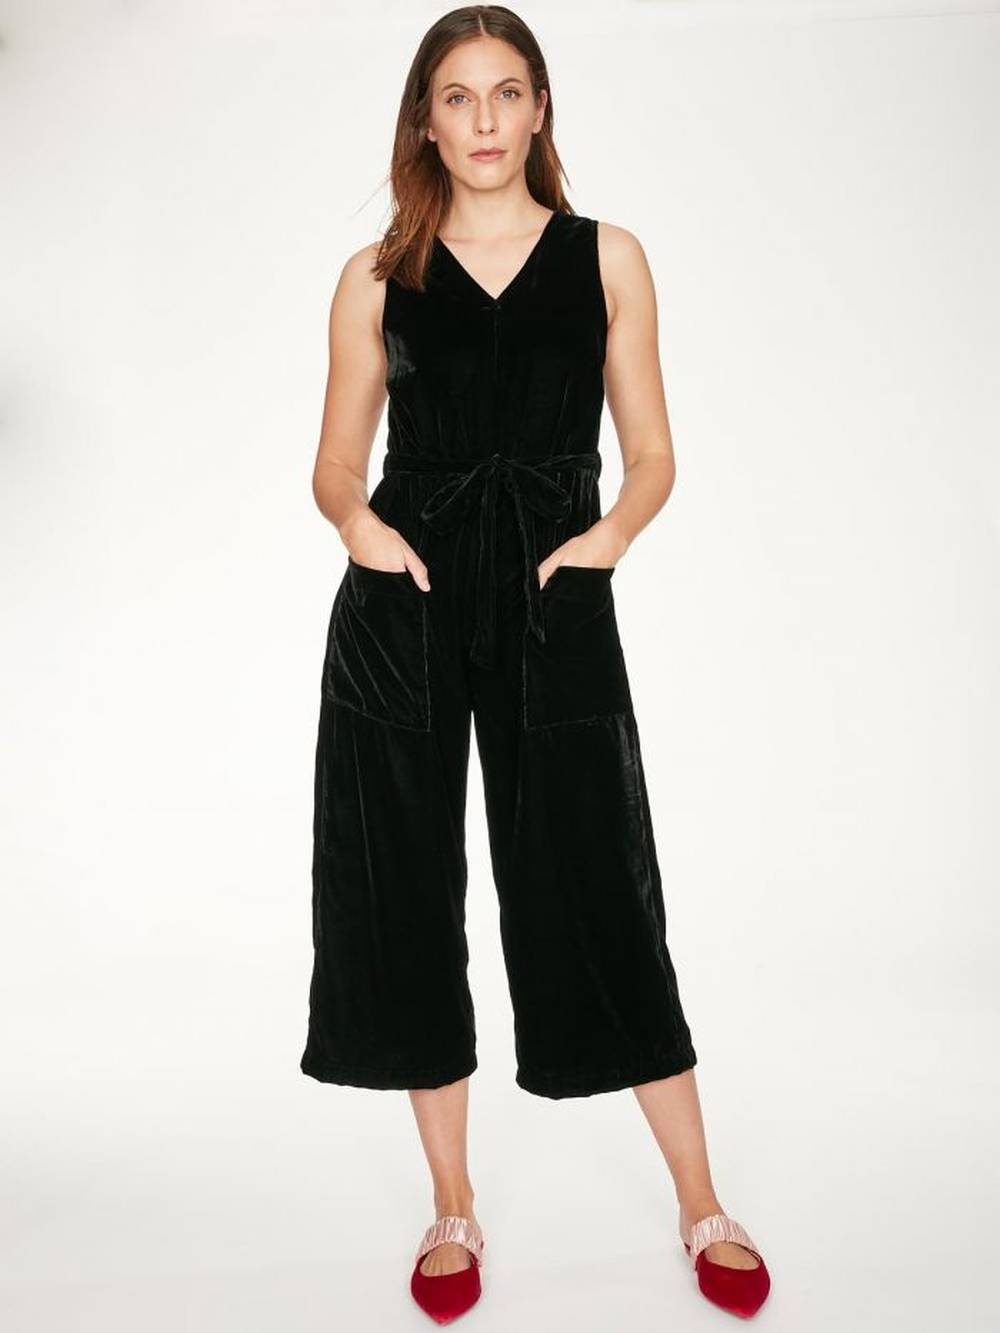 thought jumpsuit casual chic workwear